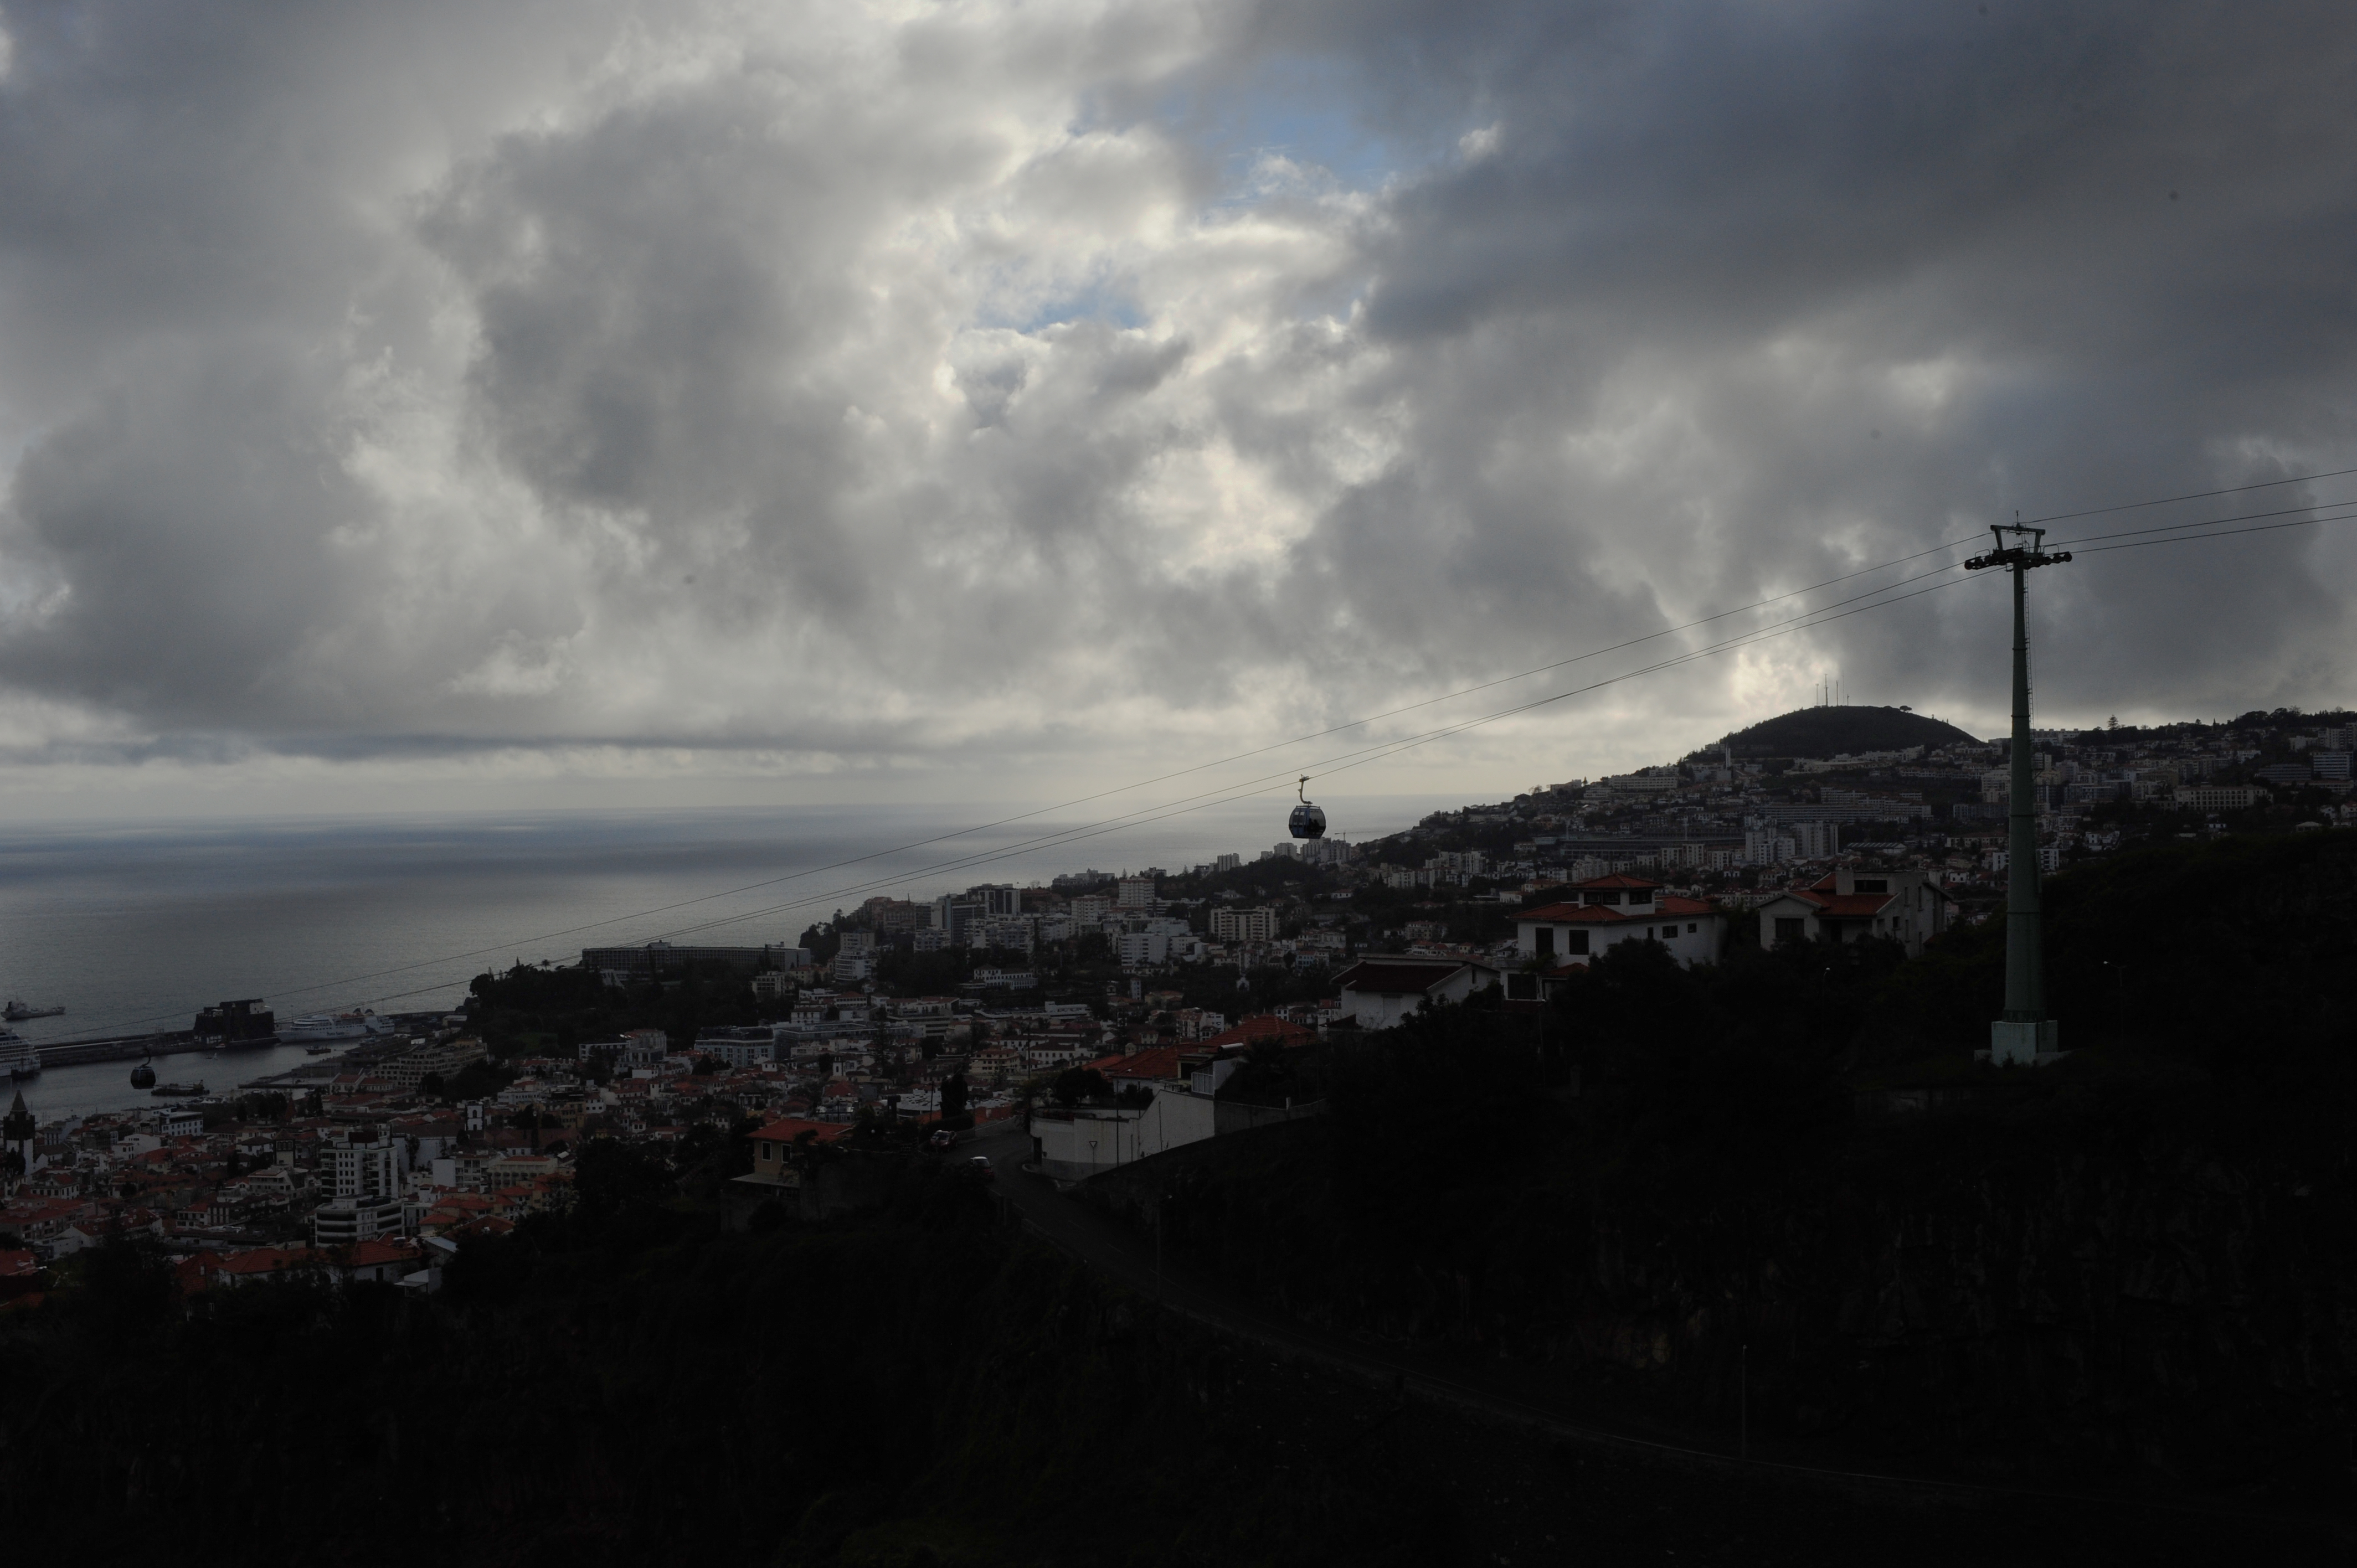 View over Funchal from the levada